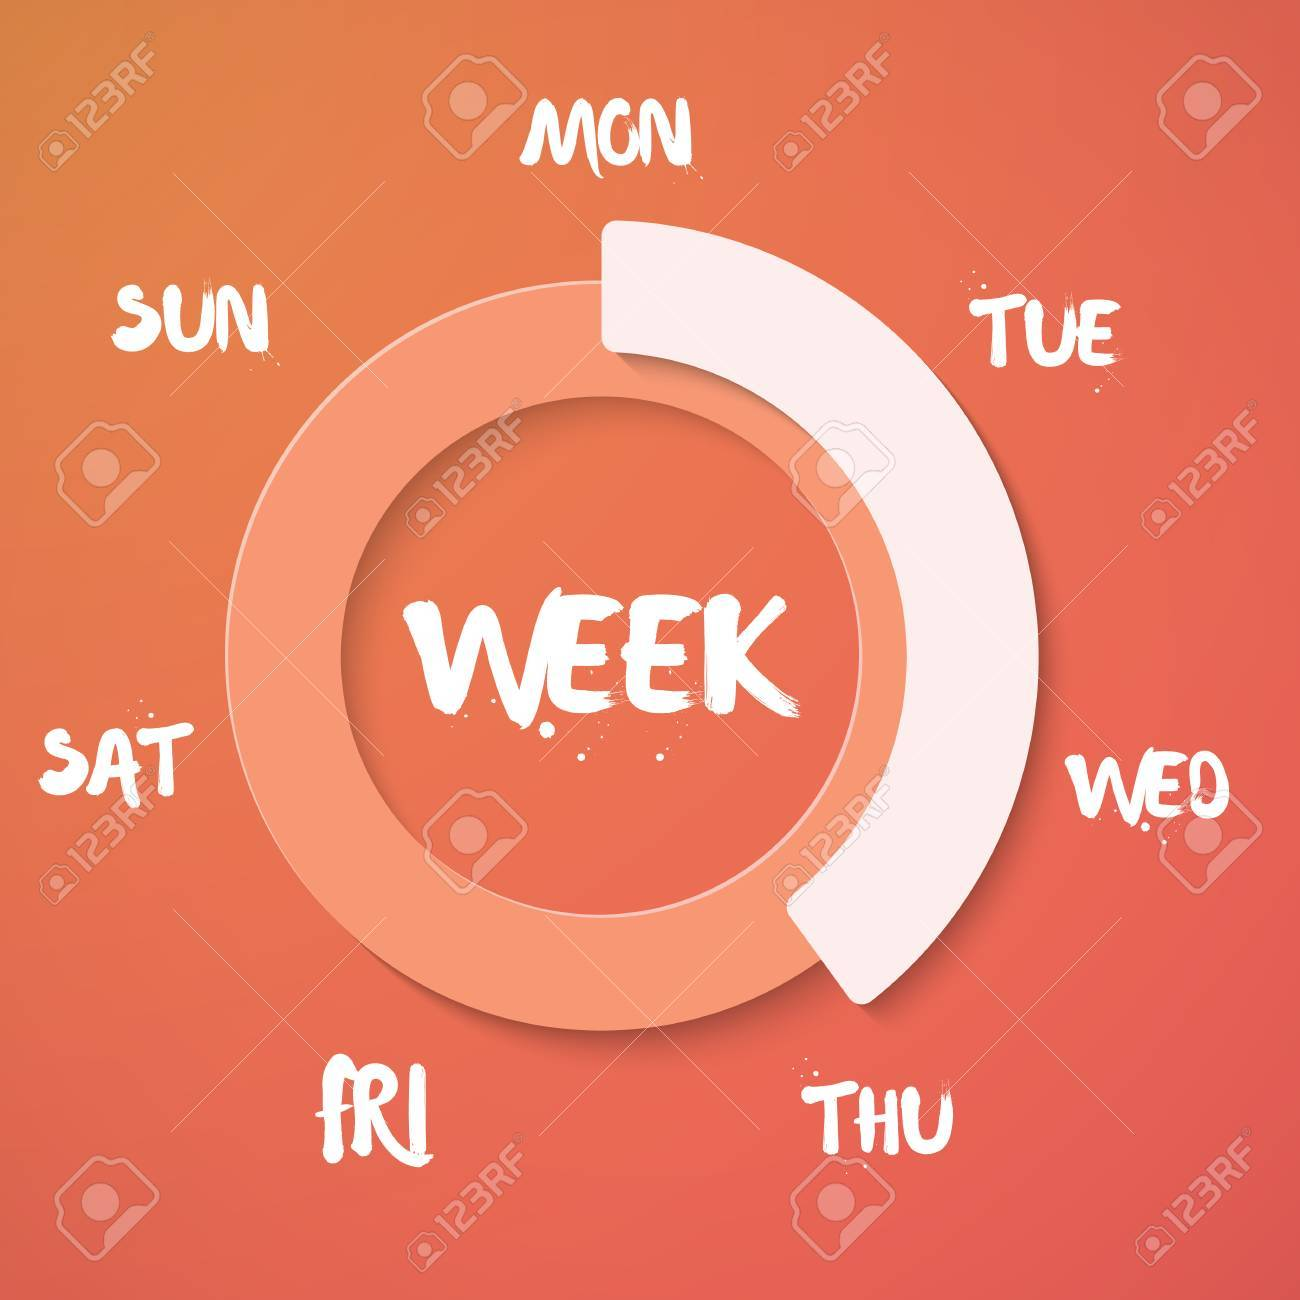 Illustration Of Week Loading, Vector Weekend Countdown Background